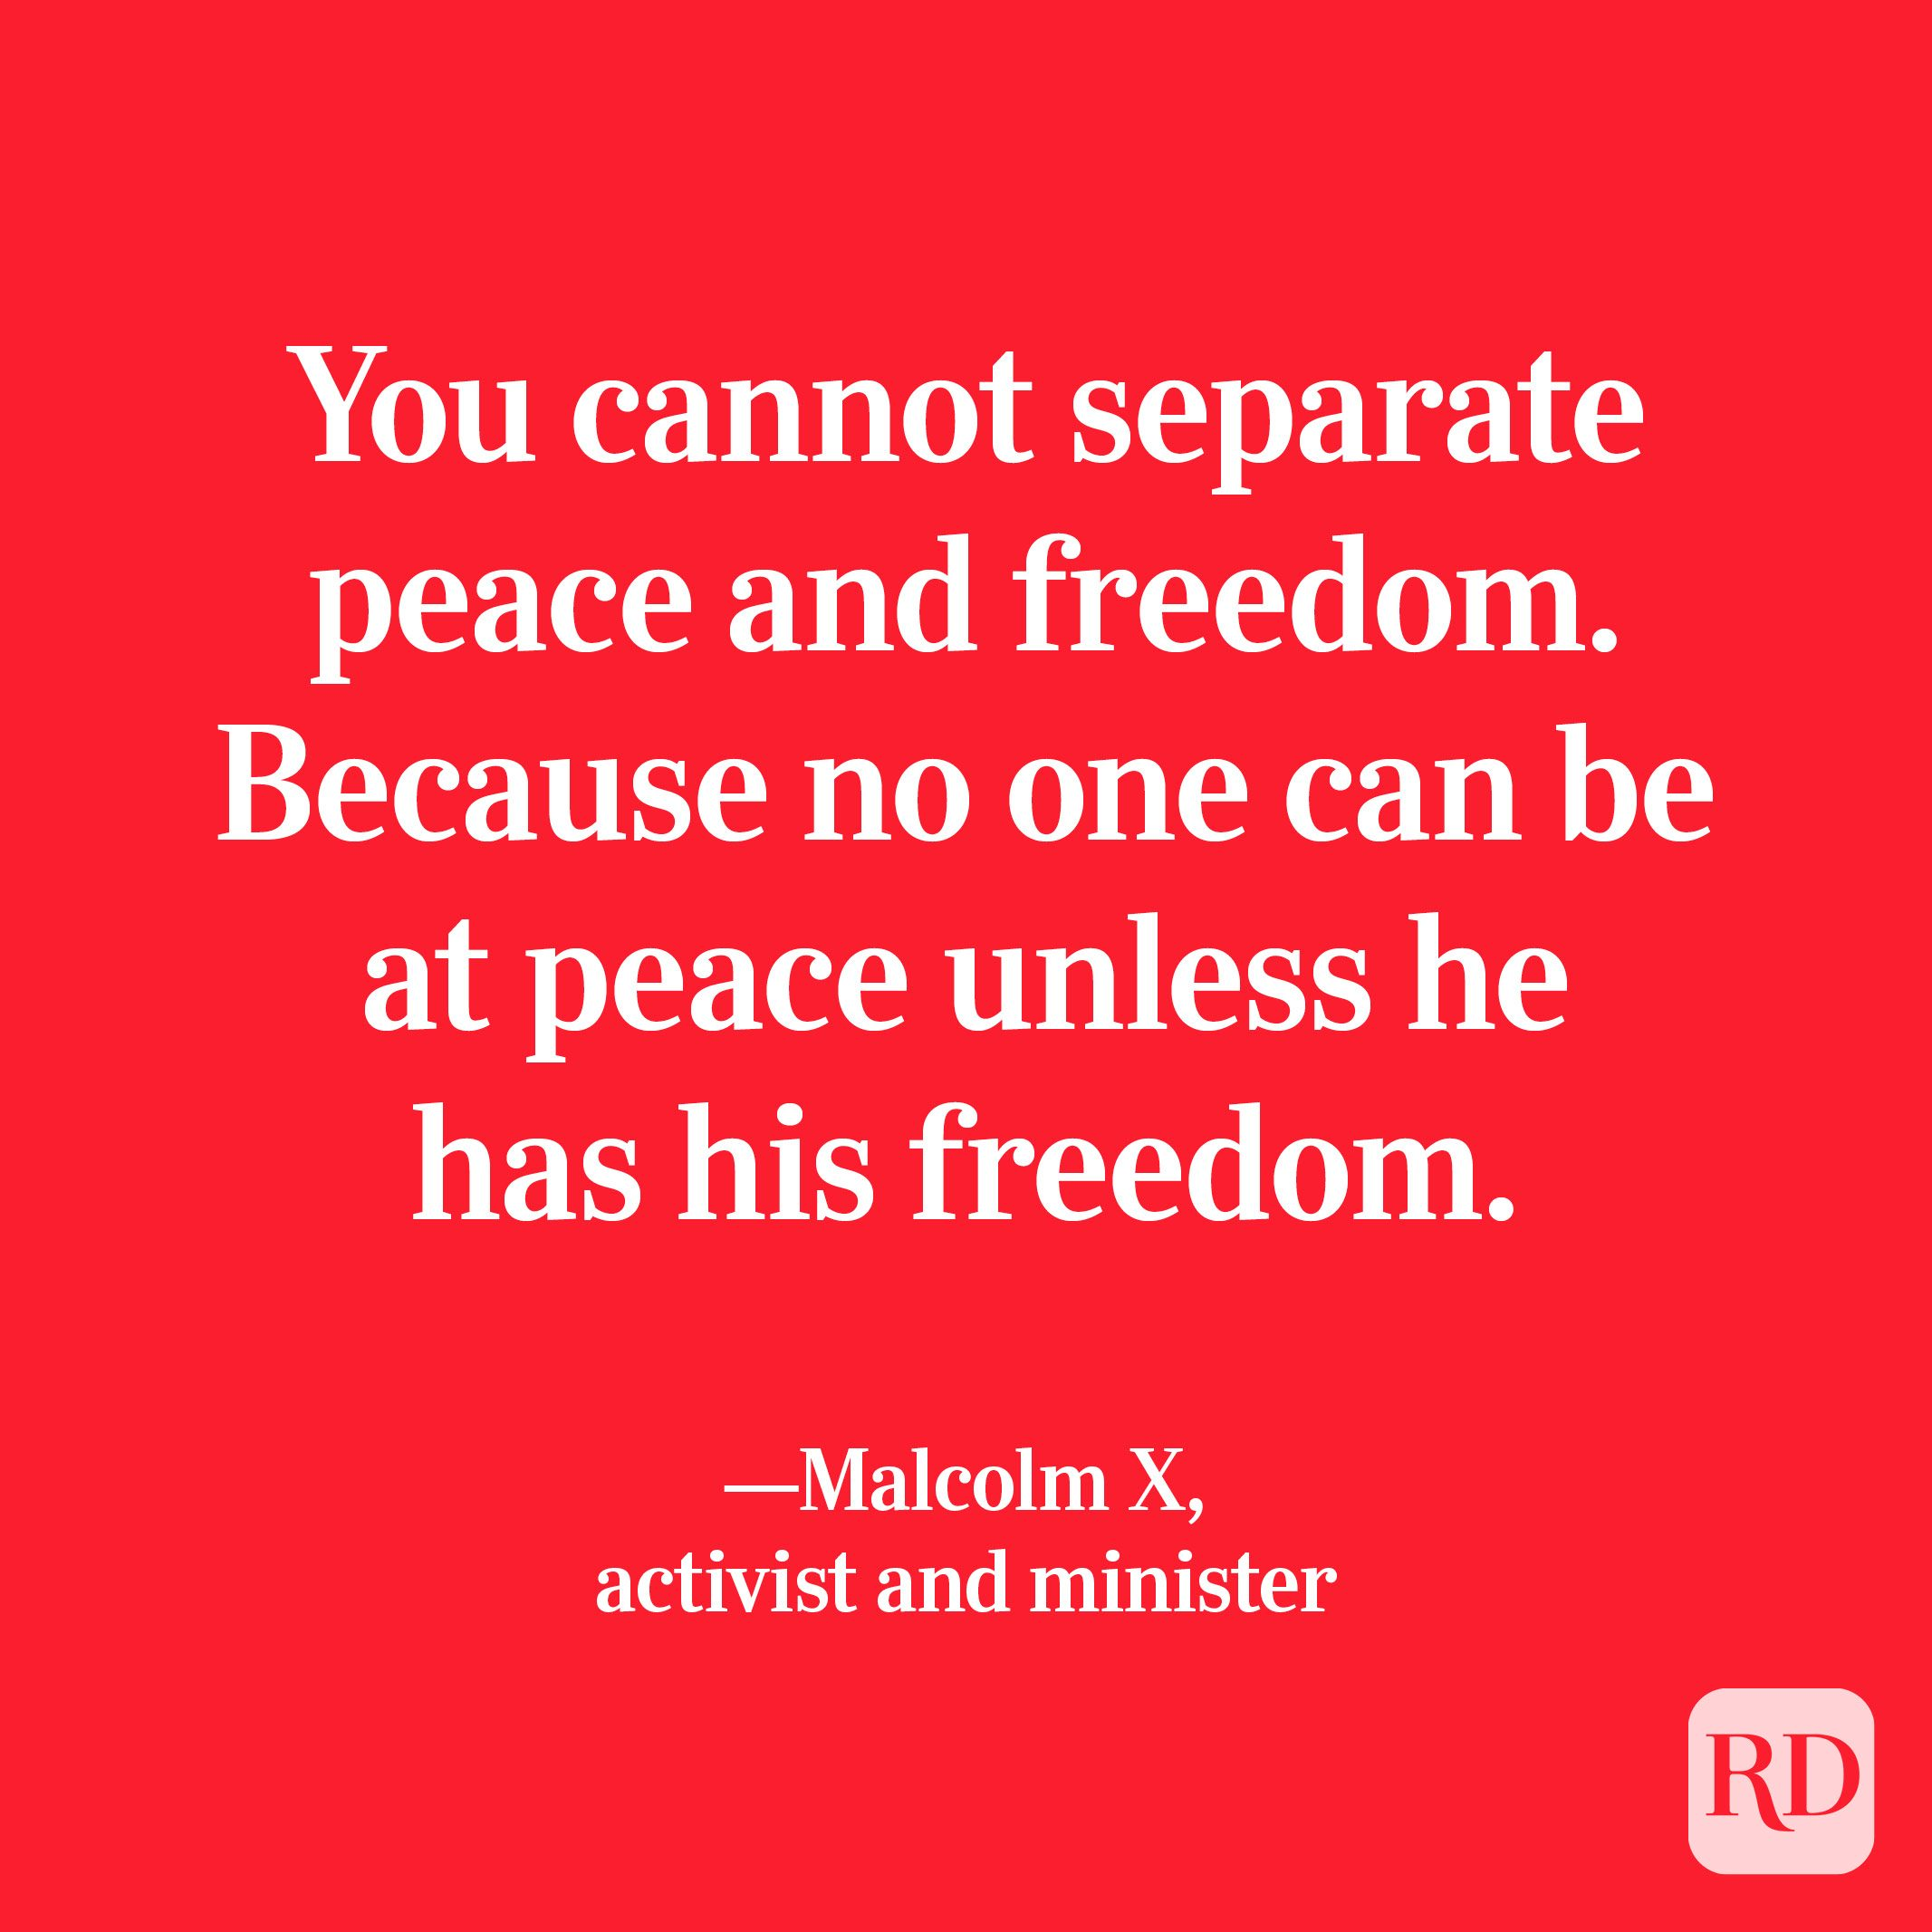 """""""You cannot separate peace and freedom. Because no one can be at peace unless he has his freedom."""" —Malcolm X, activist and minister"""